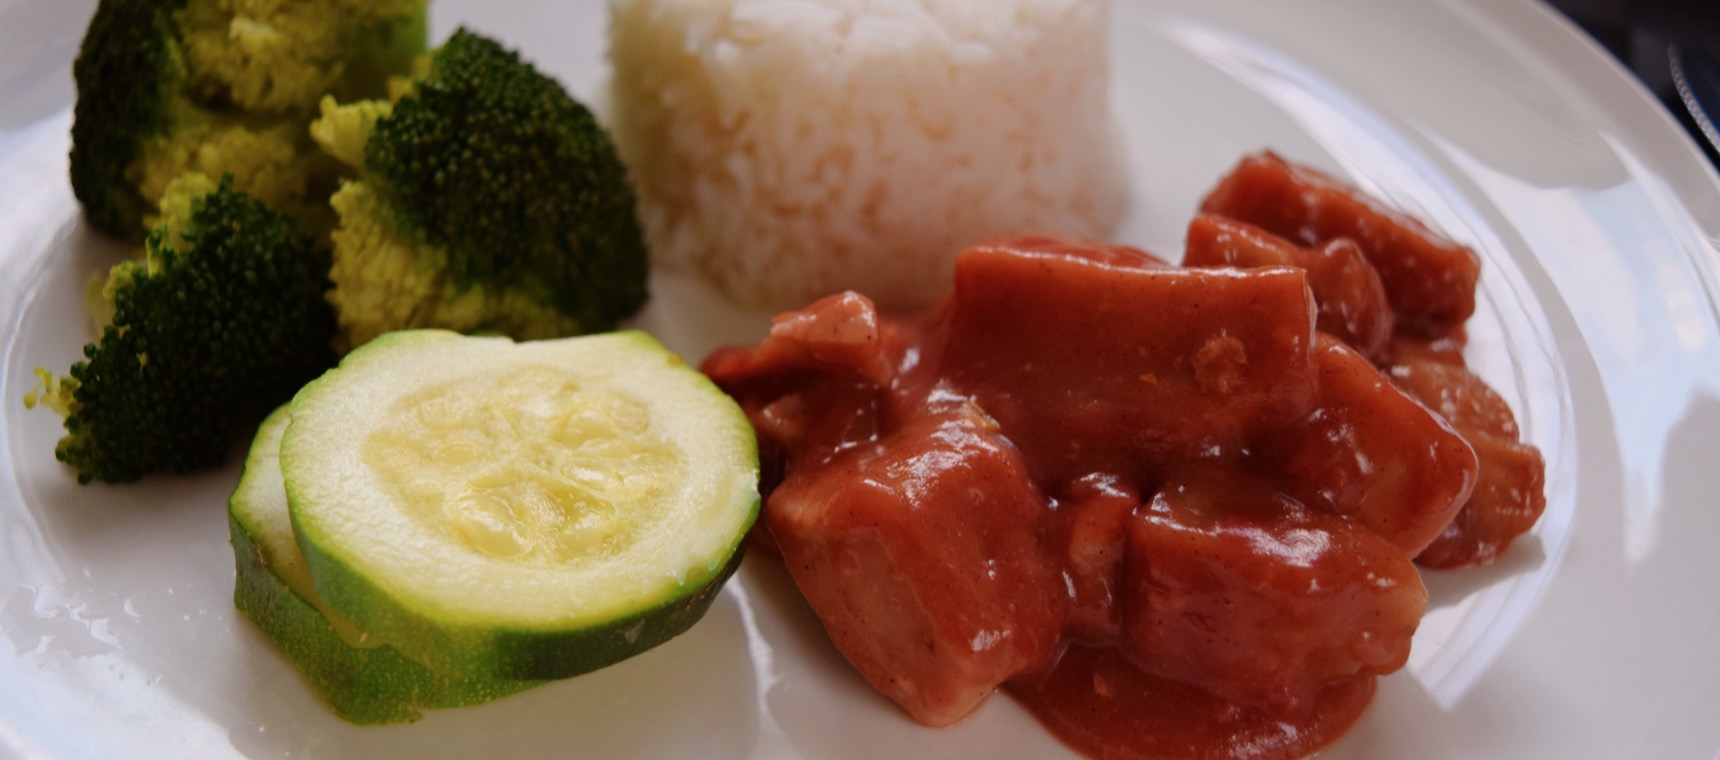 Chinese Plum Pork with Steamed Greens and Rice